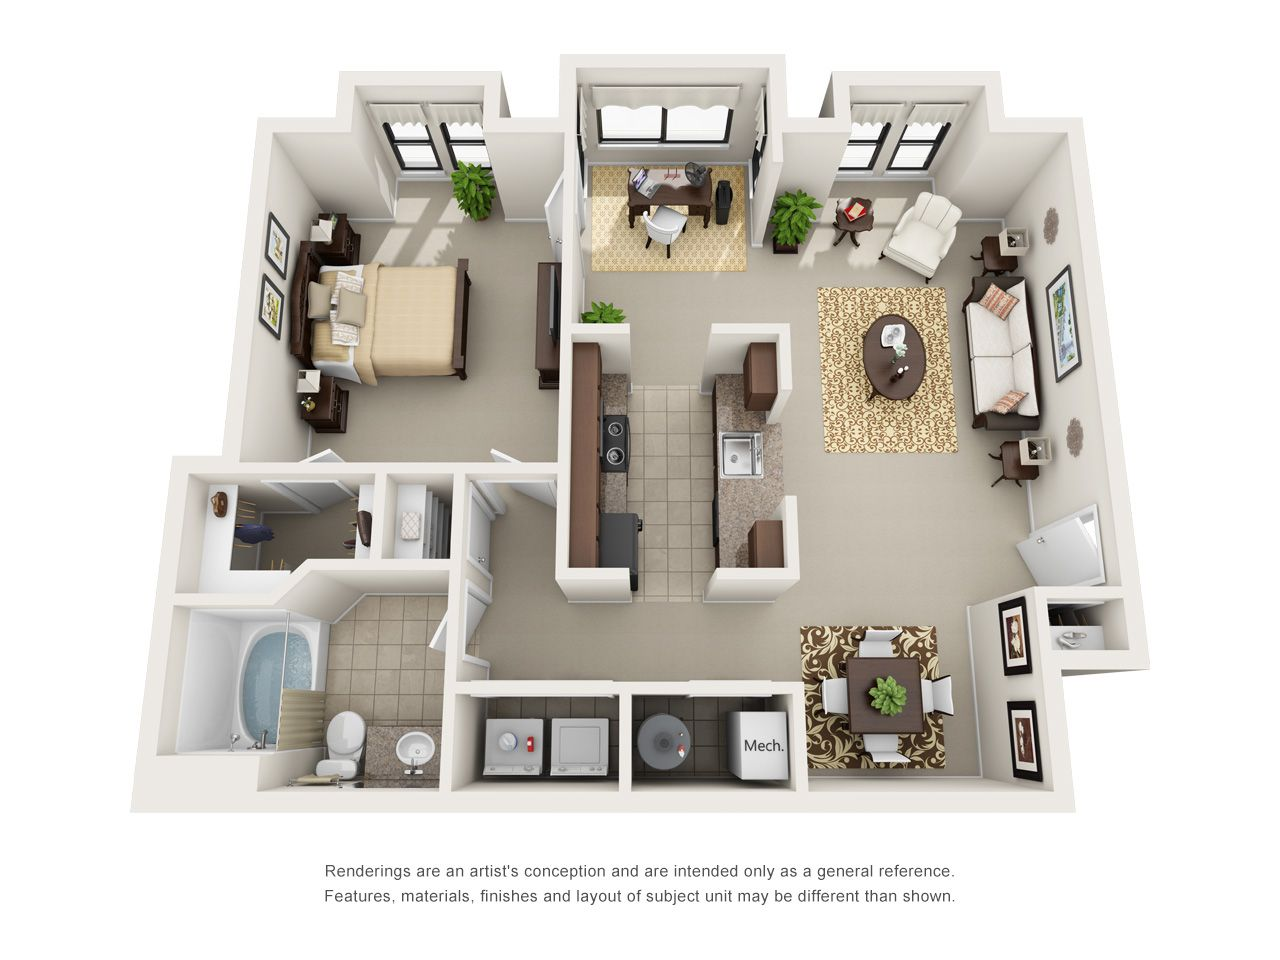 1 2 3 Bedroom Apartments In Hoover Al Floor Plans Hoover Alabama Apartment Steadfast Apartment Bedroom Decor Sims House Design Finding Apartments